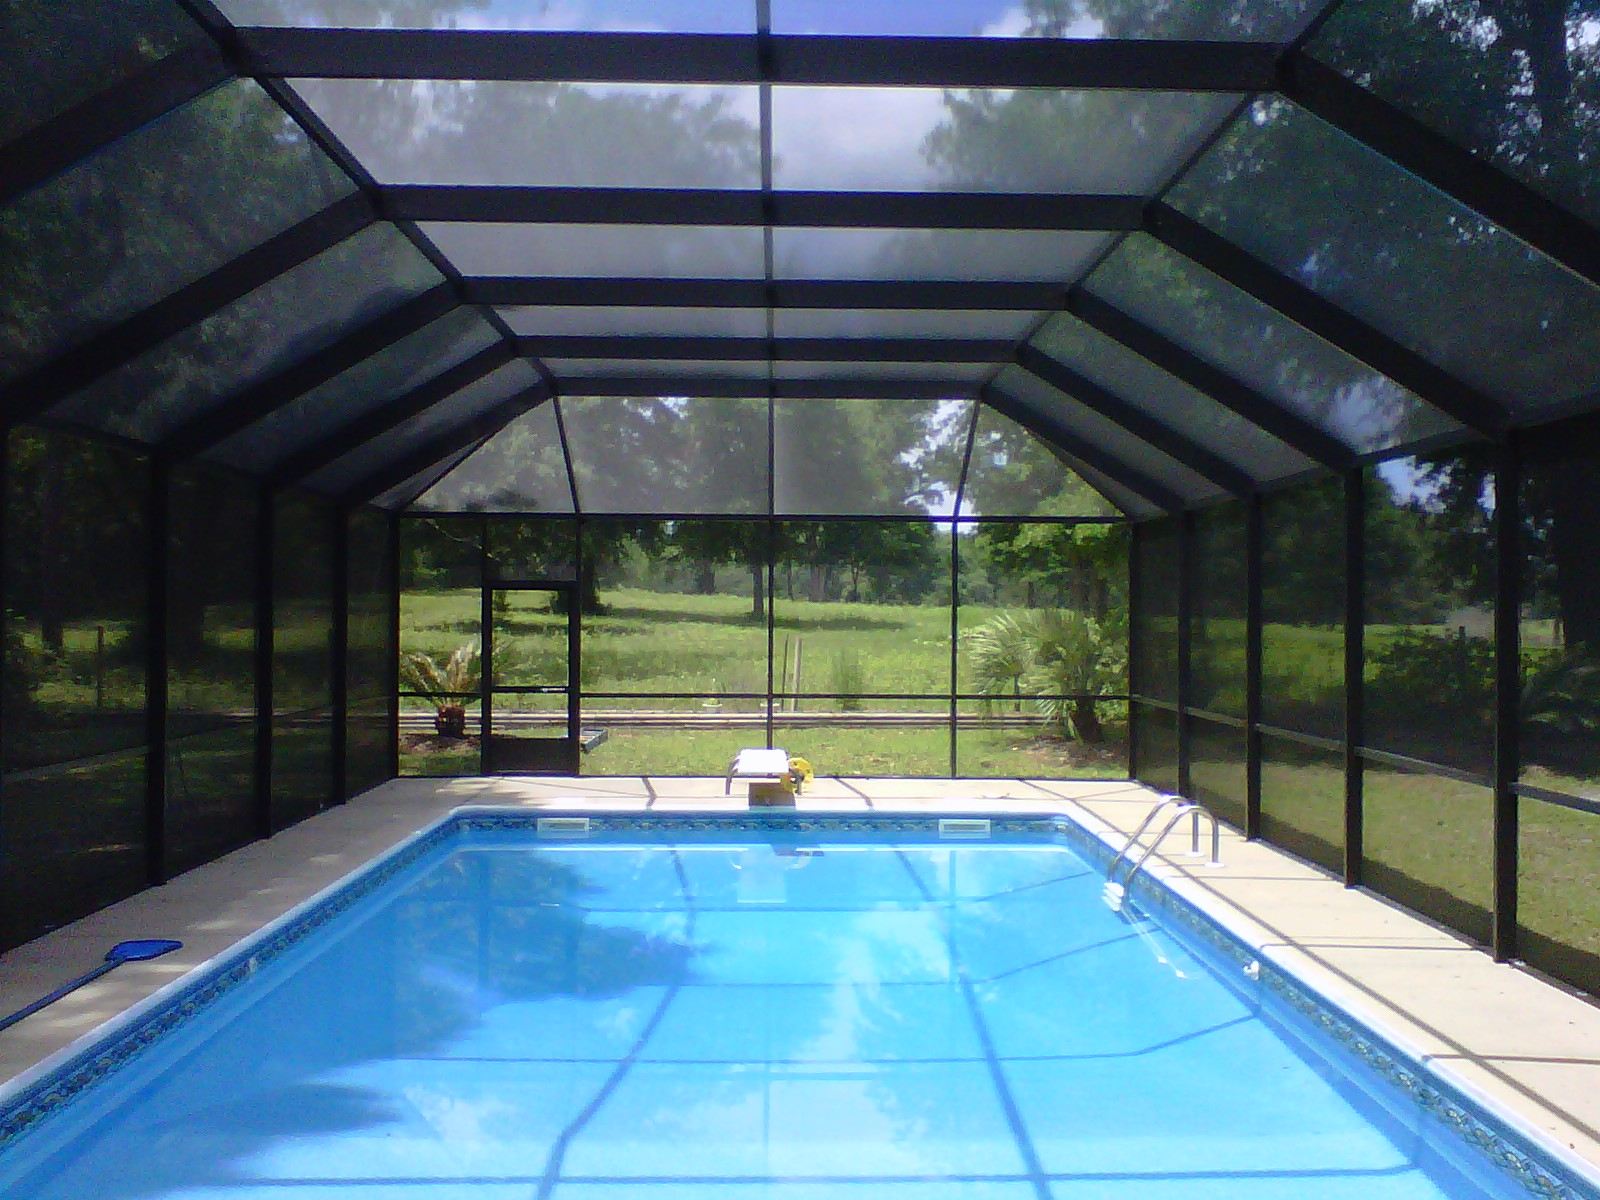 pool enclosures usa estimating pool enclosure costs ForSwimming Pool Enclosures Cost